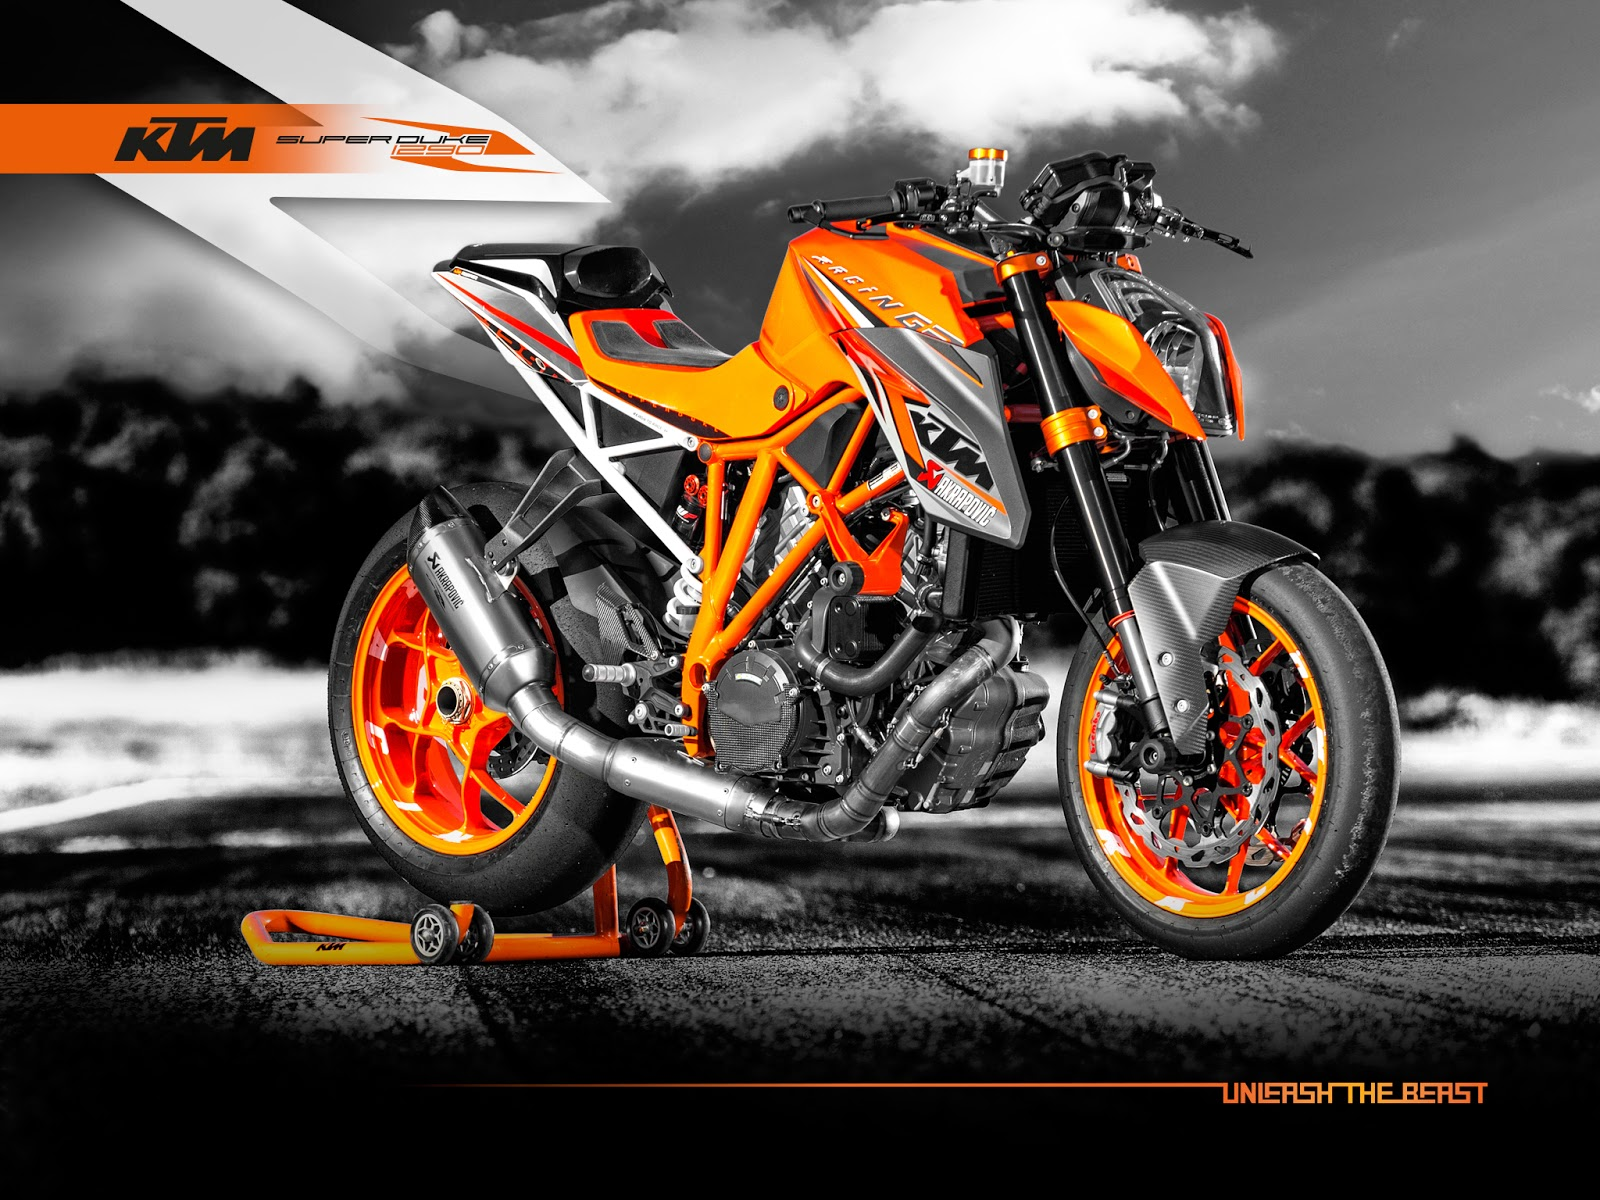 motorlikes ktm 1290 super duke r prototype versus production model. Black Bedroom Furniture Sets. Home Design Ideas